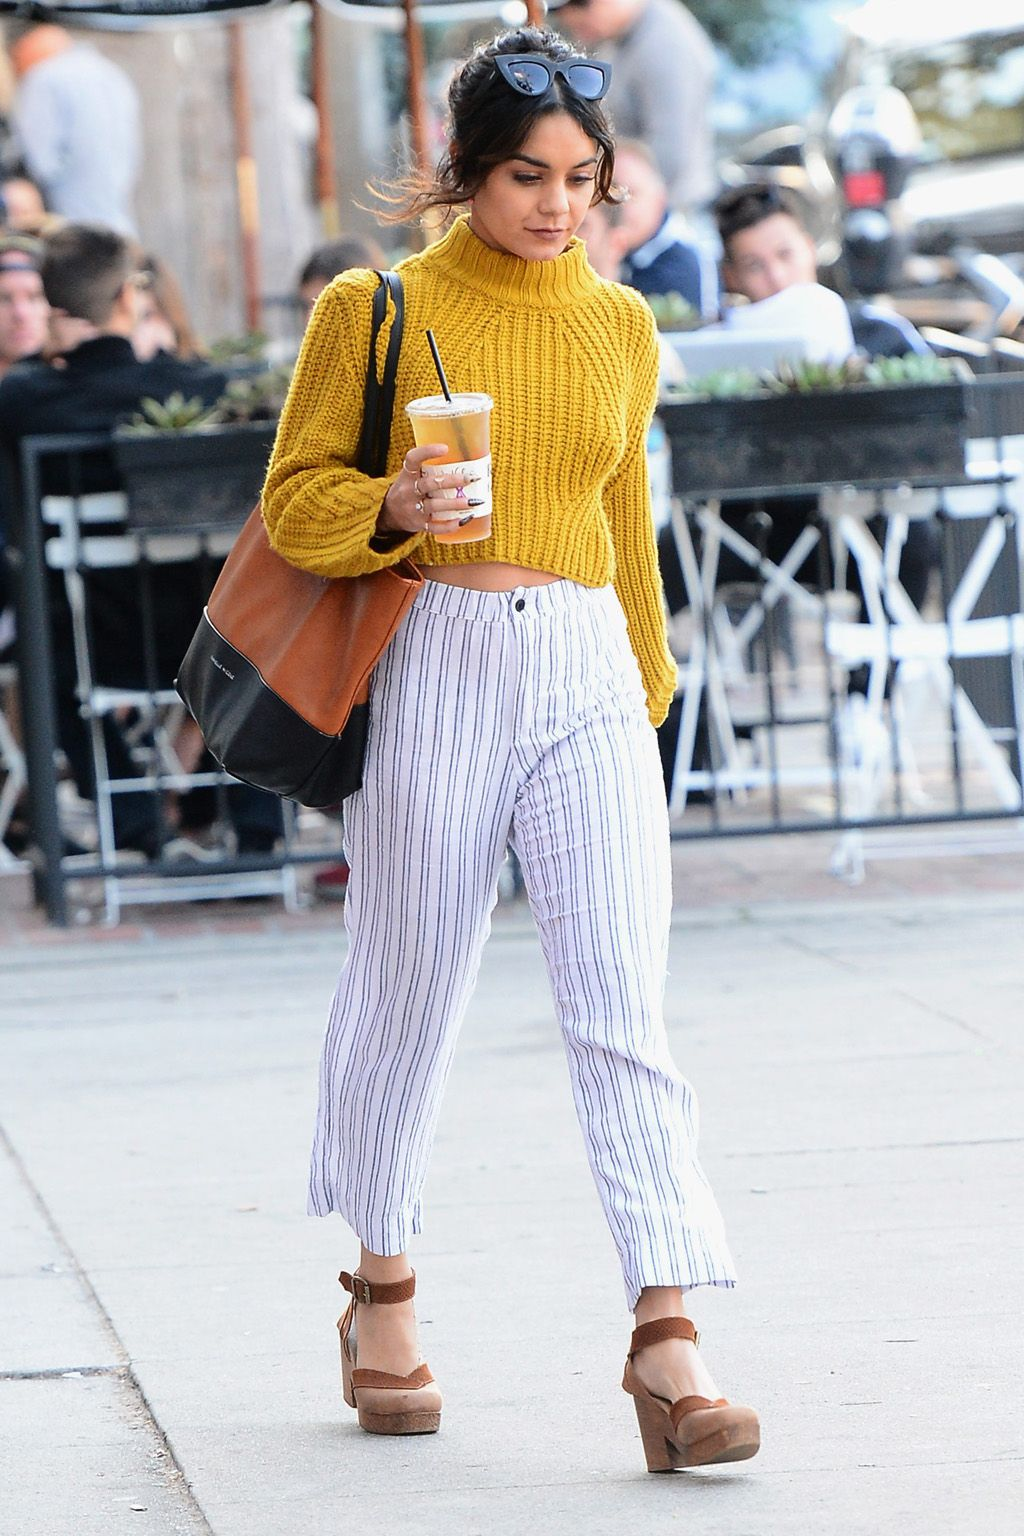 Look del día. Yellown turtleneck crop sweater+white striped ankle pants+brown sandals+brown and black tote bag. Fall Transitional Casual Outfit 2016